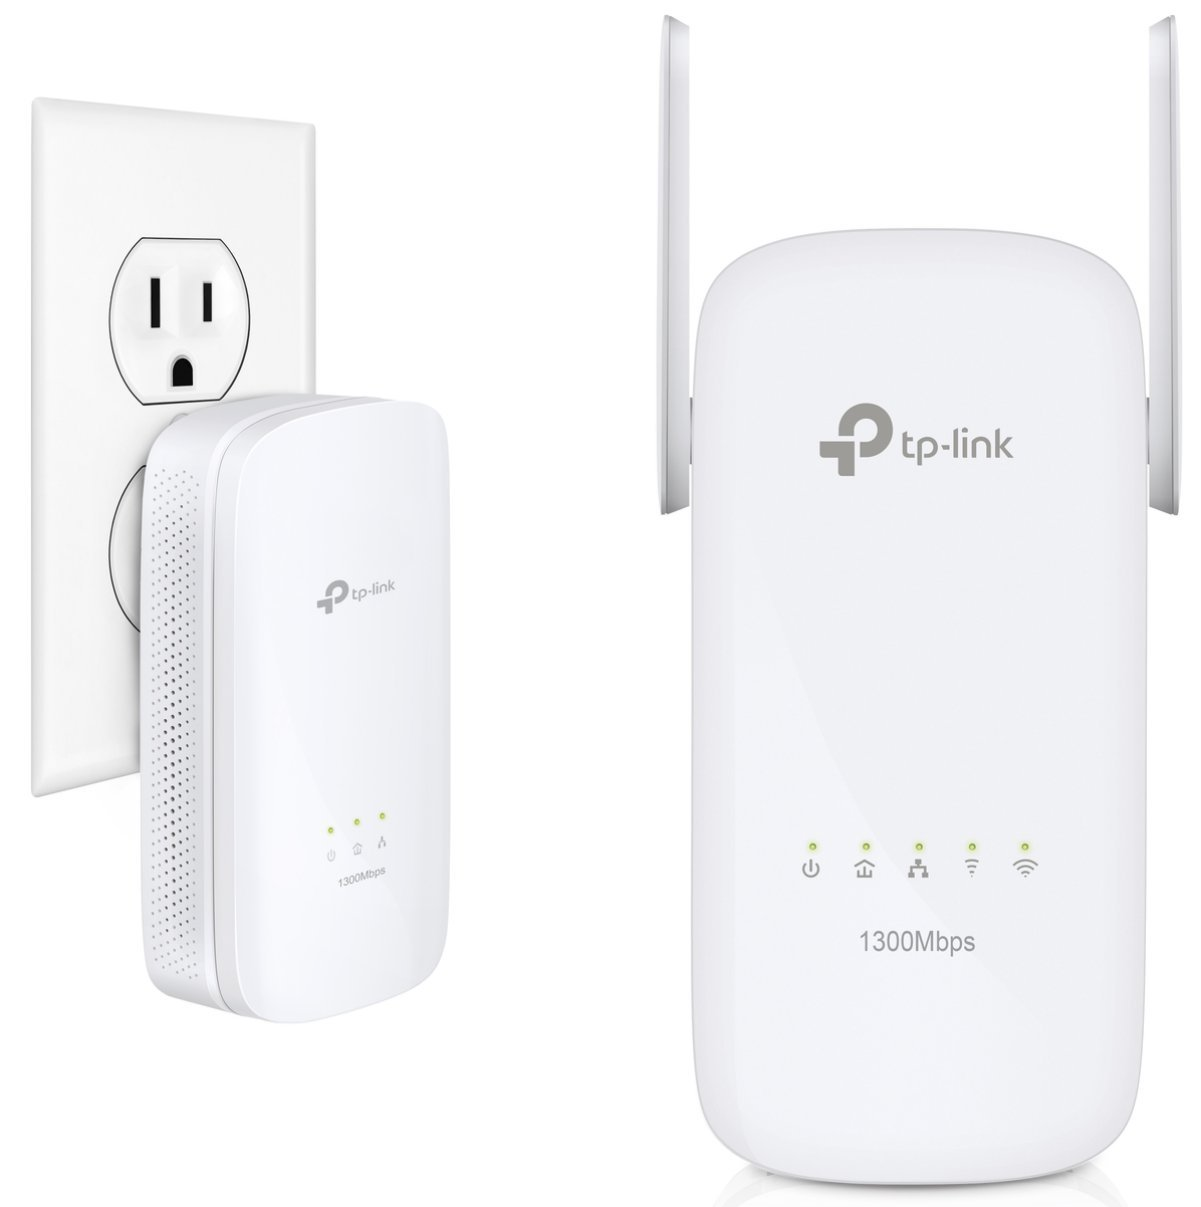 TP-Link AV1300 / AC1350 Gigabit Powerline AC Wi-Fi Kit | HomePlug AV2 Technology w/ Beamforming | Plug, Pair, and Play (TL-WPA8630 KIT V2) by TP-Link